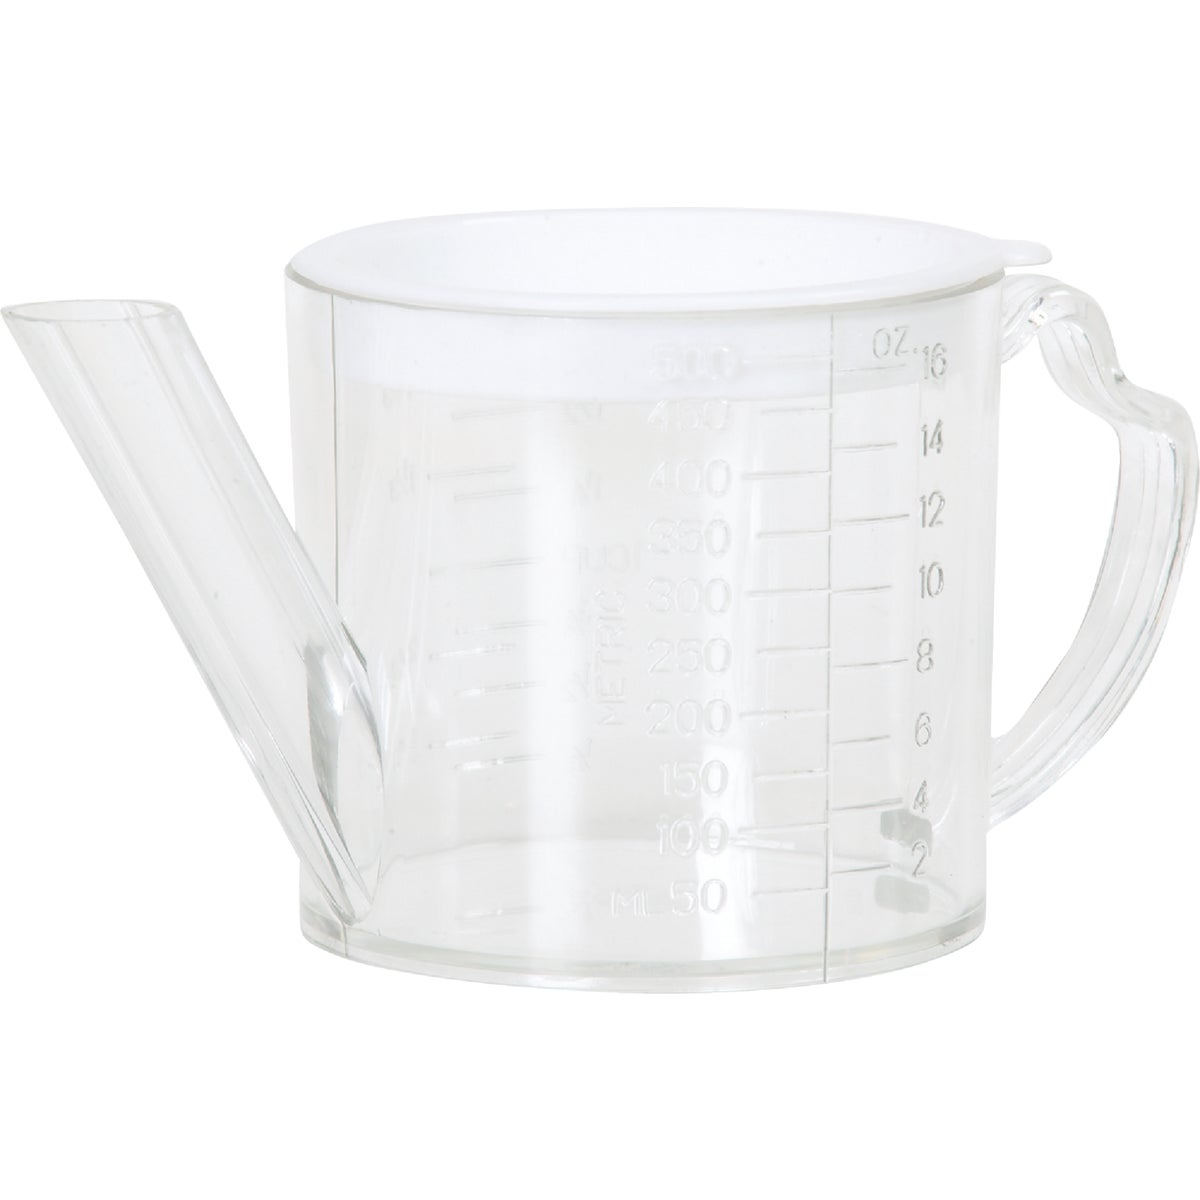 2 CUP SEPARATOR/STRAINER